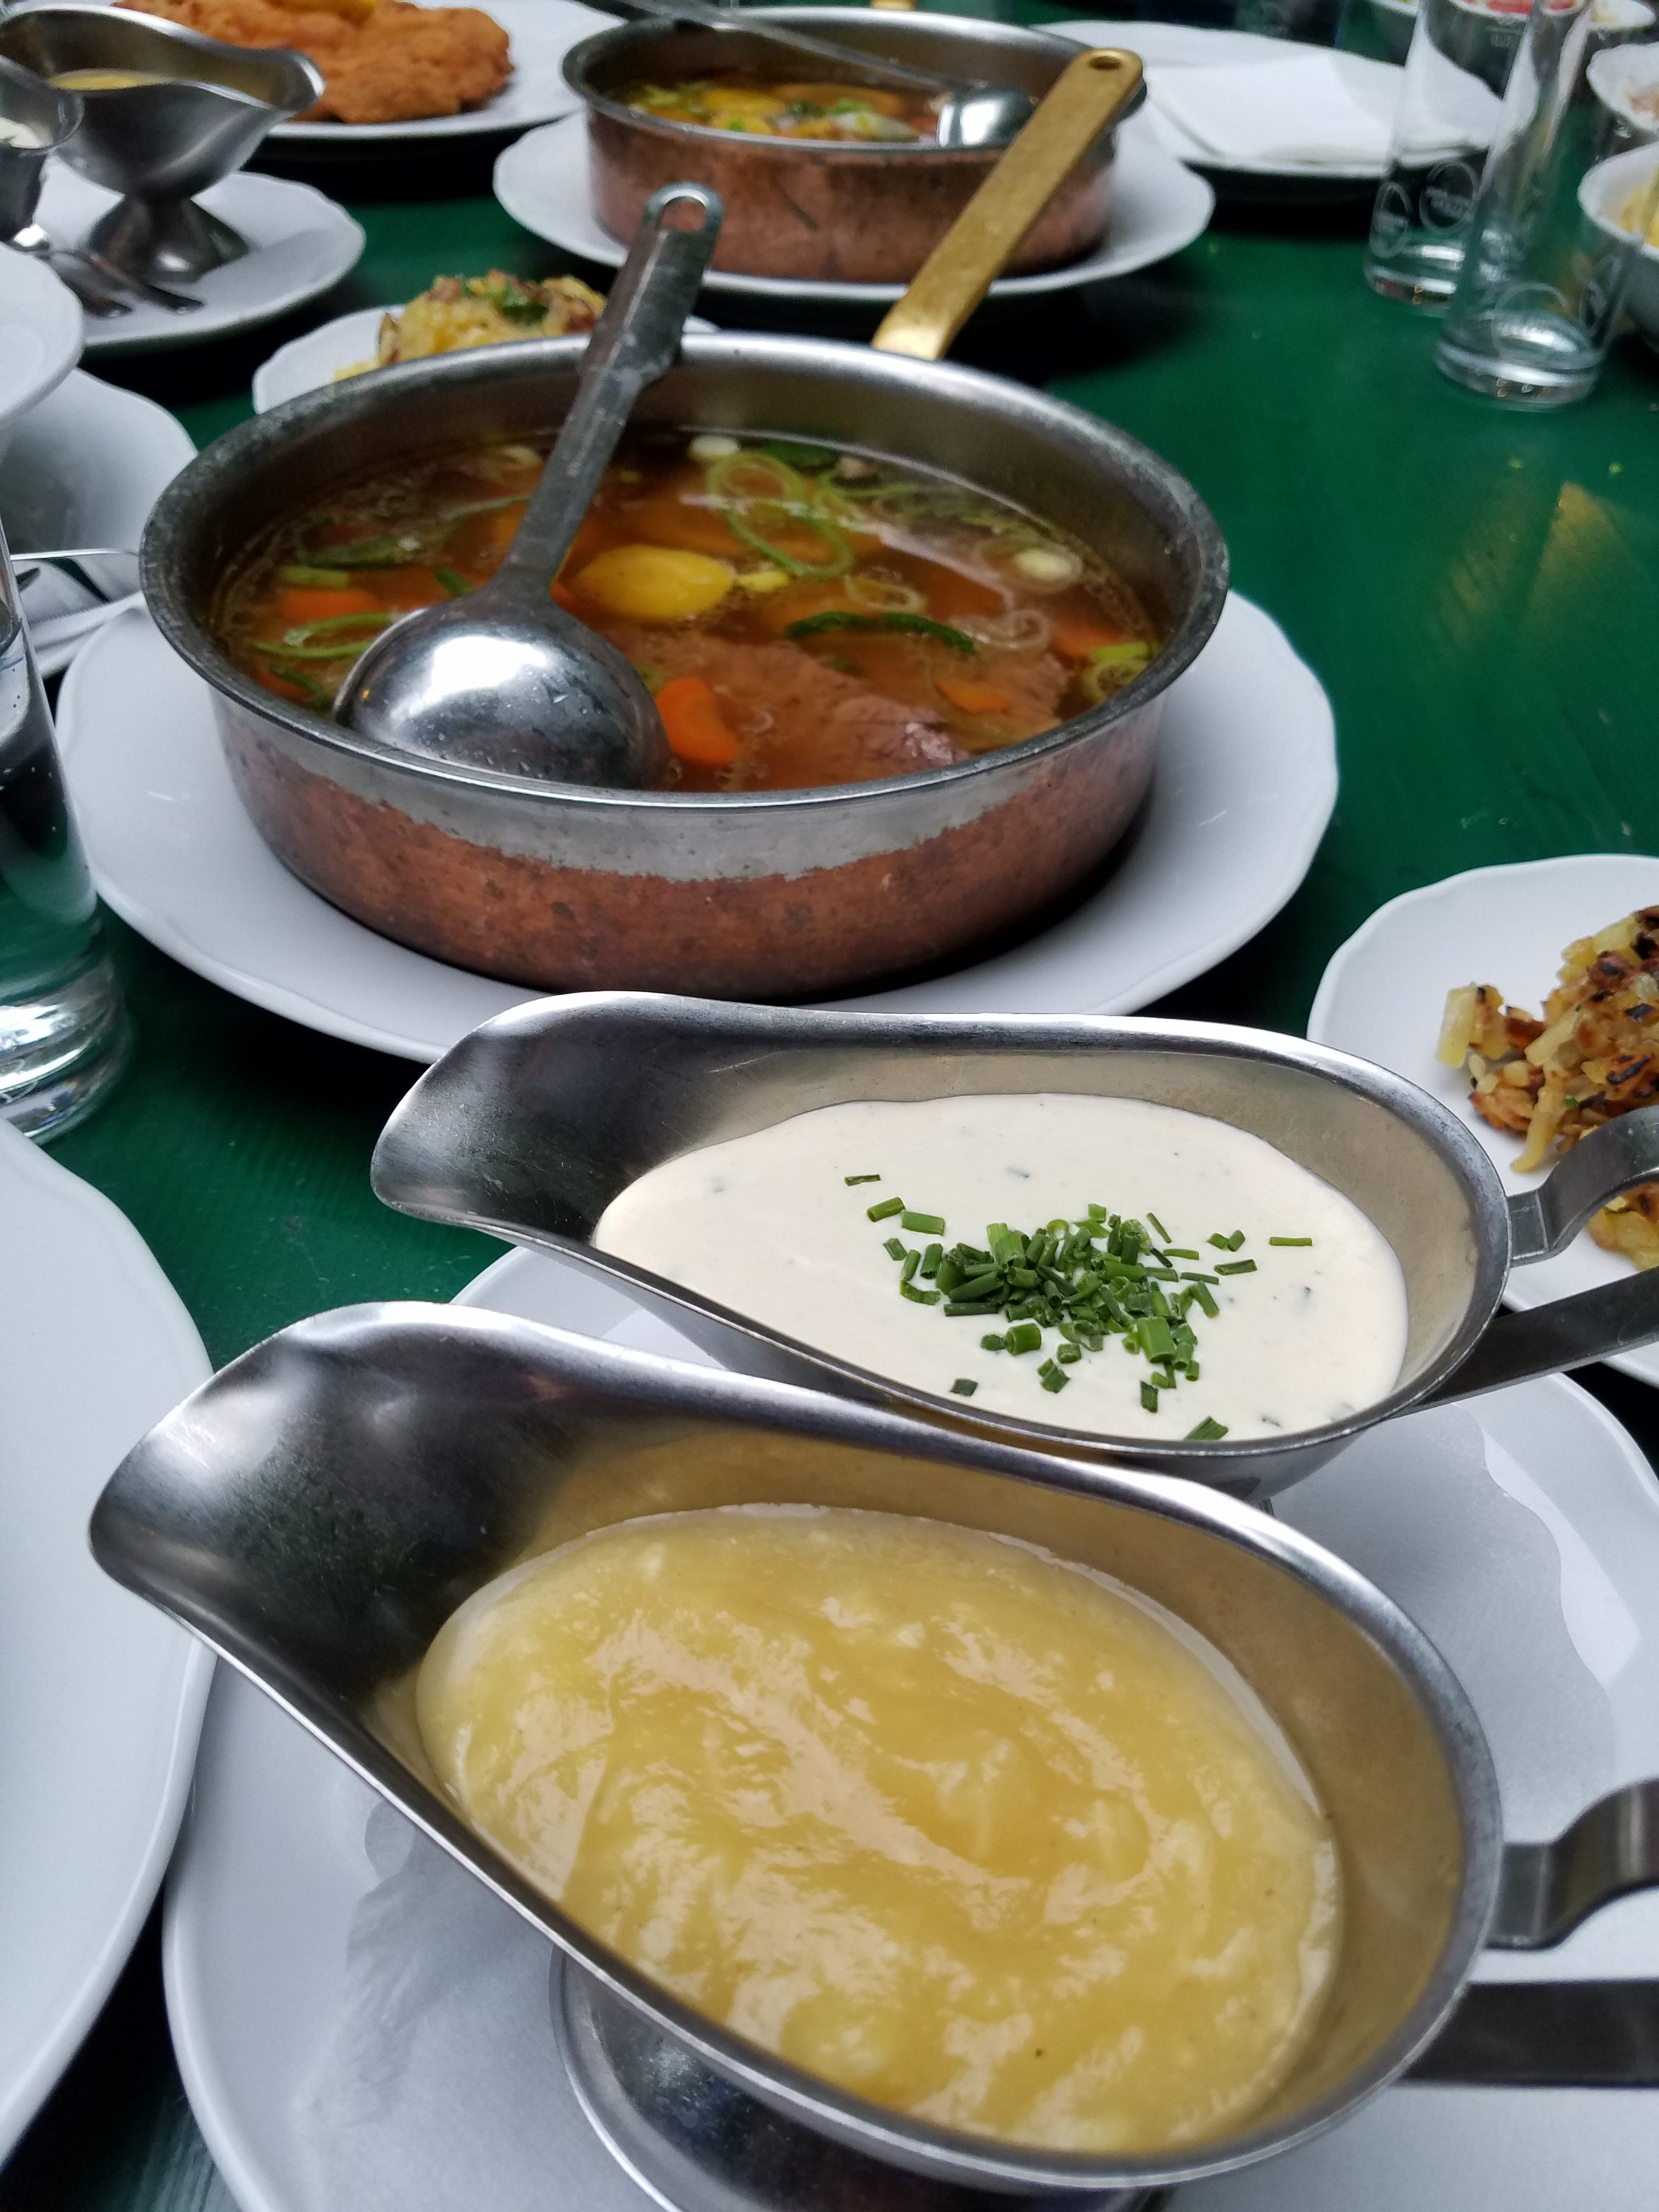 This images shows an Austrian culinary specialty. A pot of vegetable broth with a spoon in it sits on a table next to two gravy boats filled with sauces. Beef or veal is typically cooked in the broth and then served in the pot with sauces on the side.